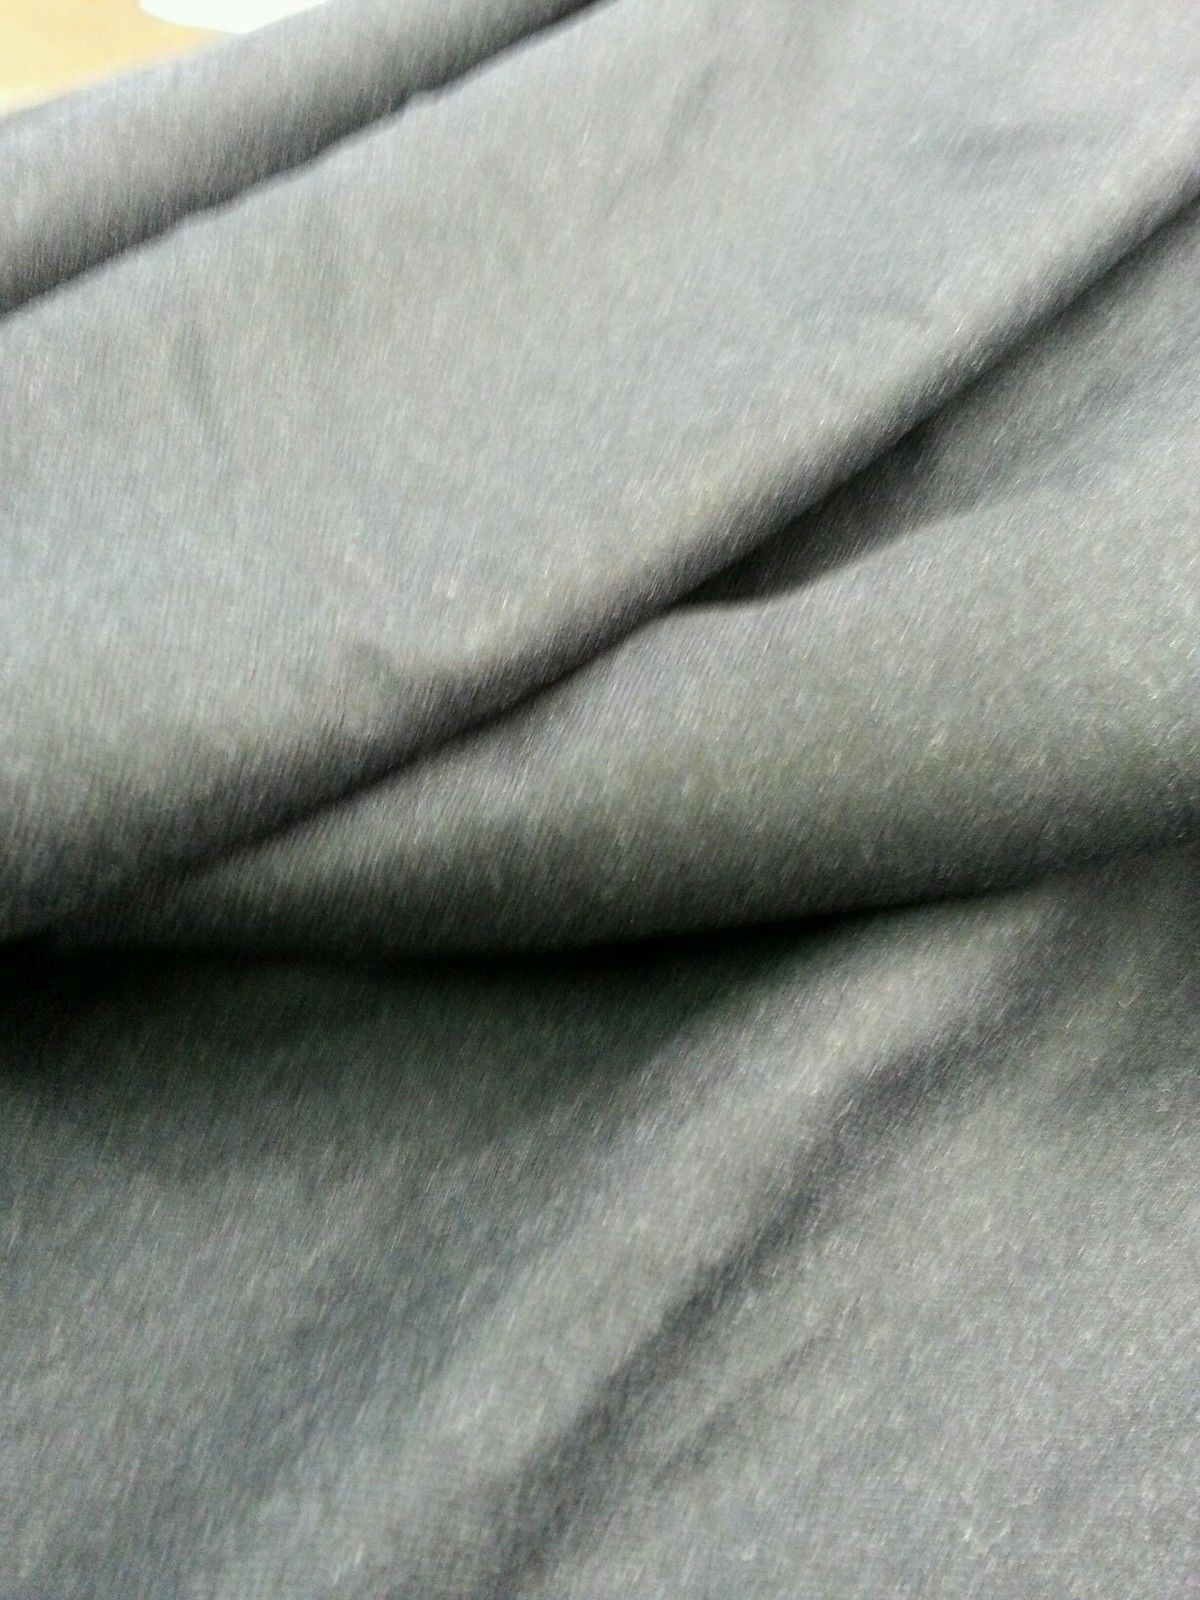 Super 120'S Wool full Weight Blue grey fine classic Suiting Fabric 6 Yards